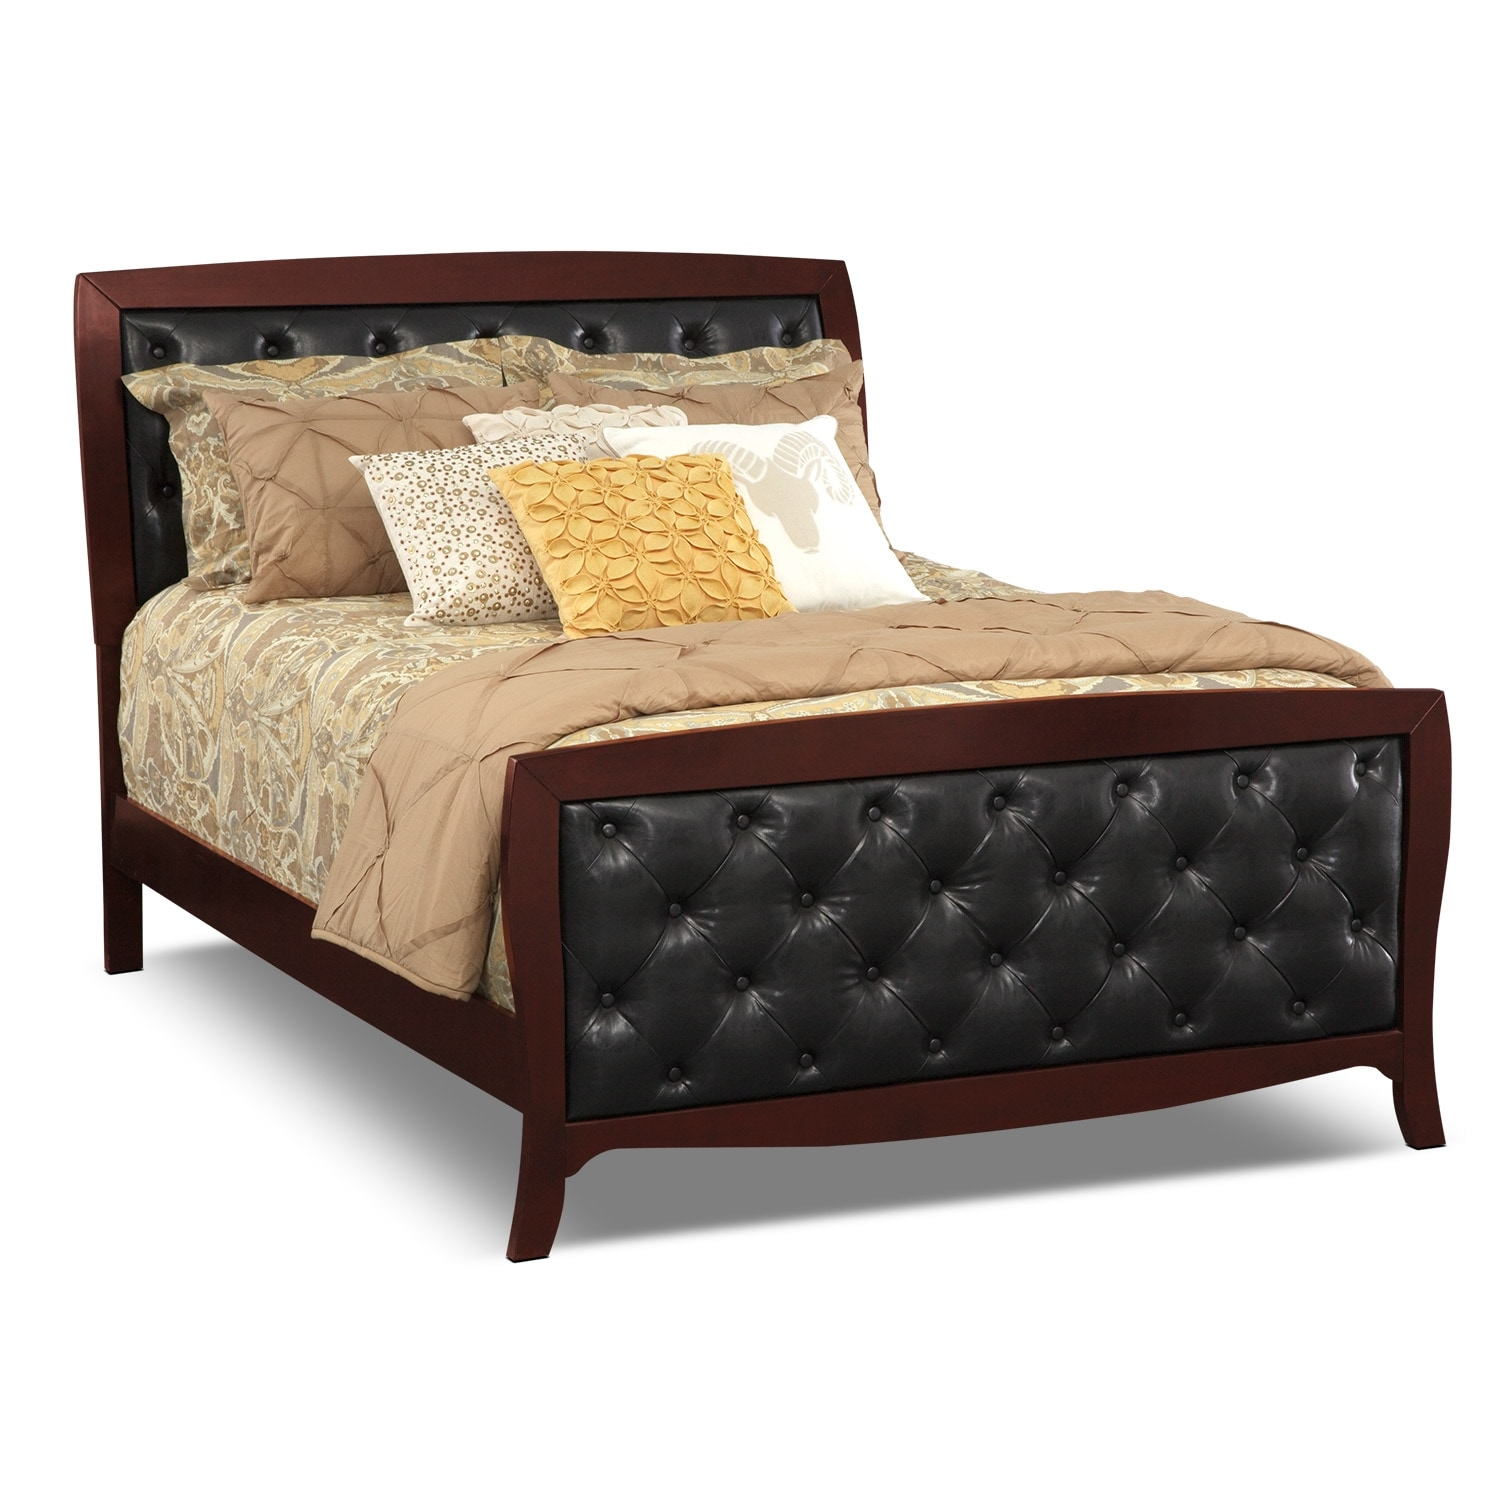 Jaden King Tufted Bed - Merlot